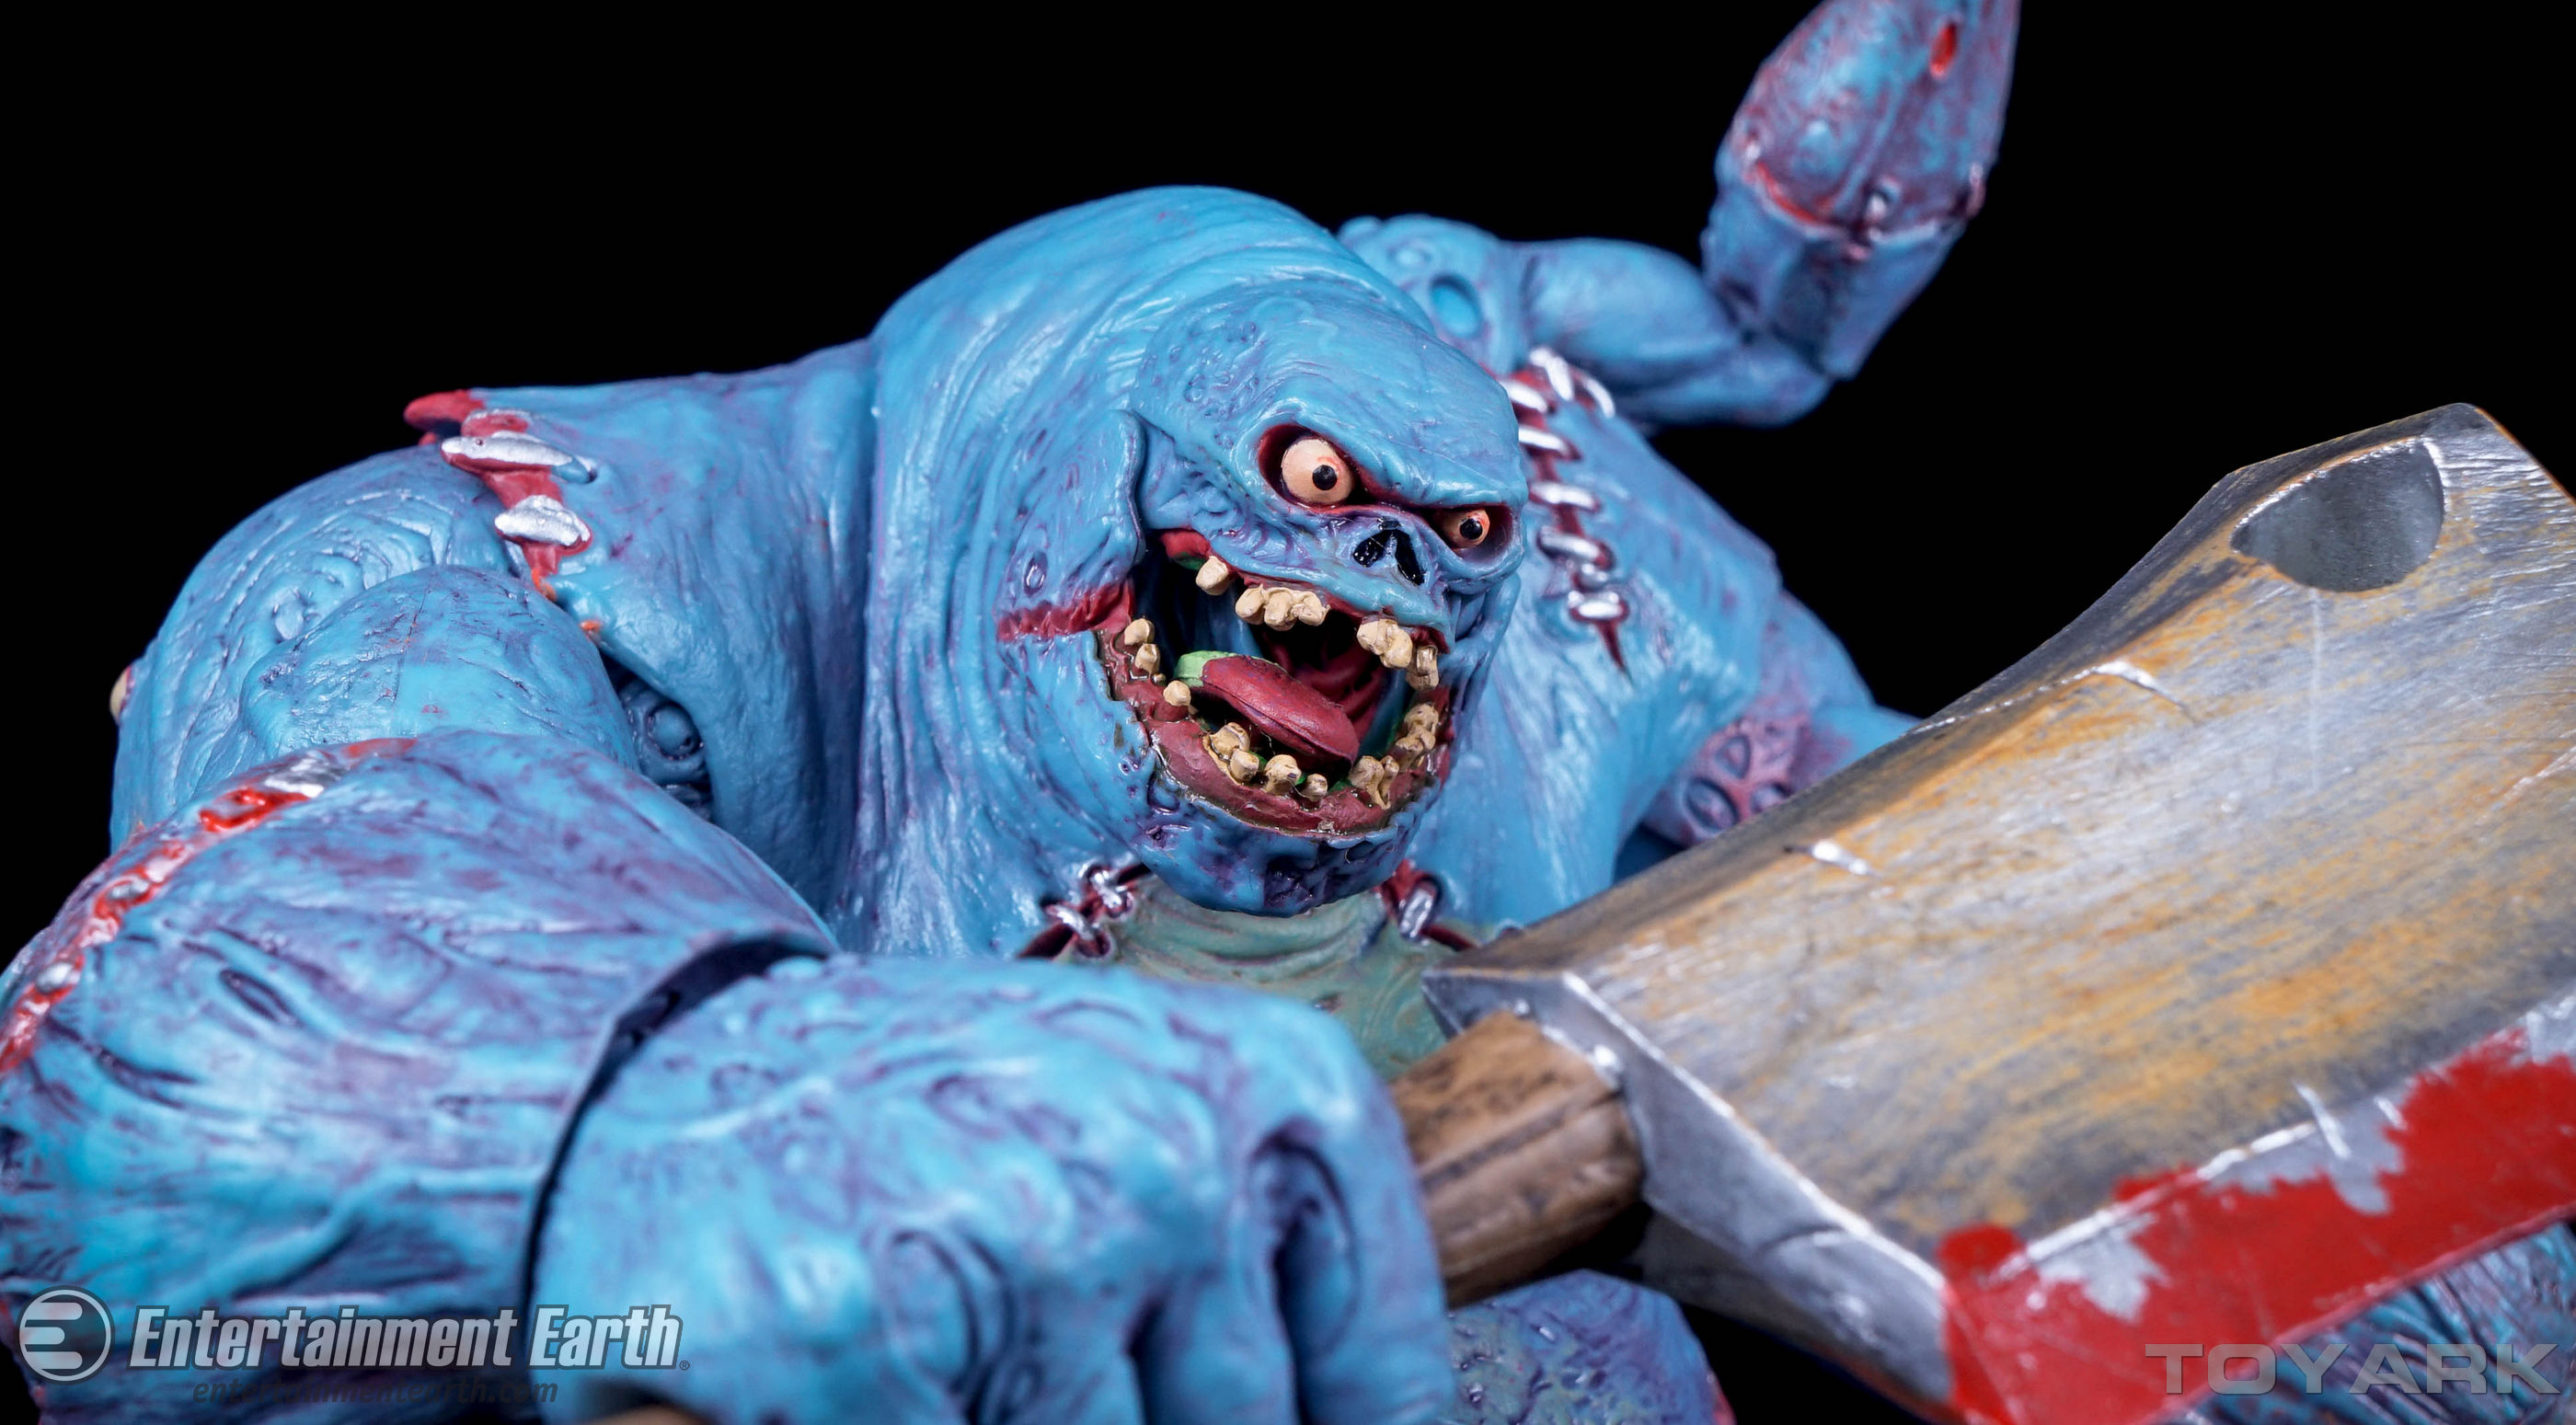 http://news.toyark.com/wp-content/uploads/sites/4/2016/01/NECA-HOTS-Stitches-032.jpg